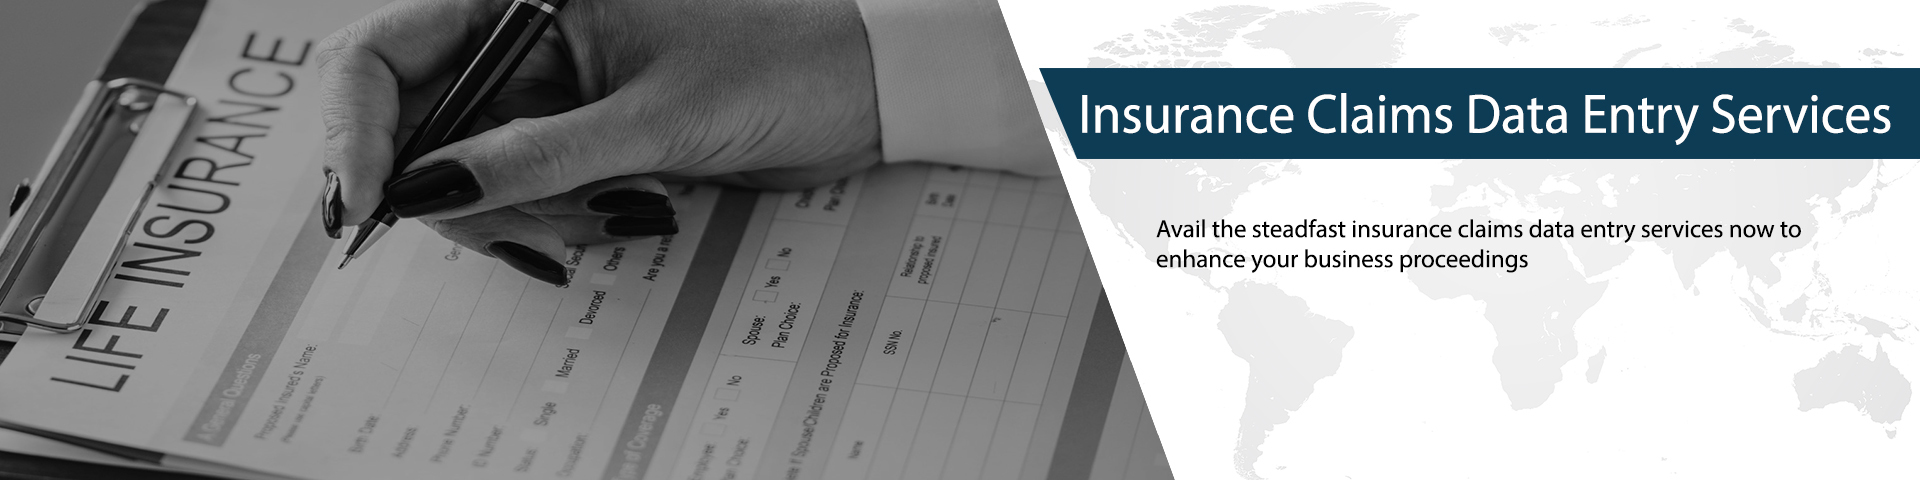 Insurance Claim Data Entry Services